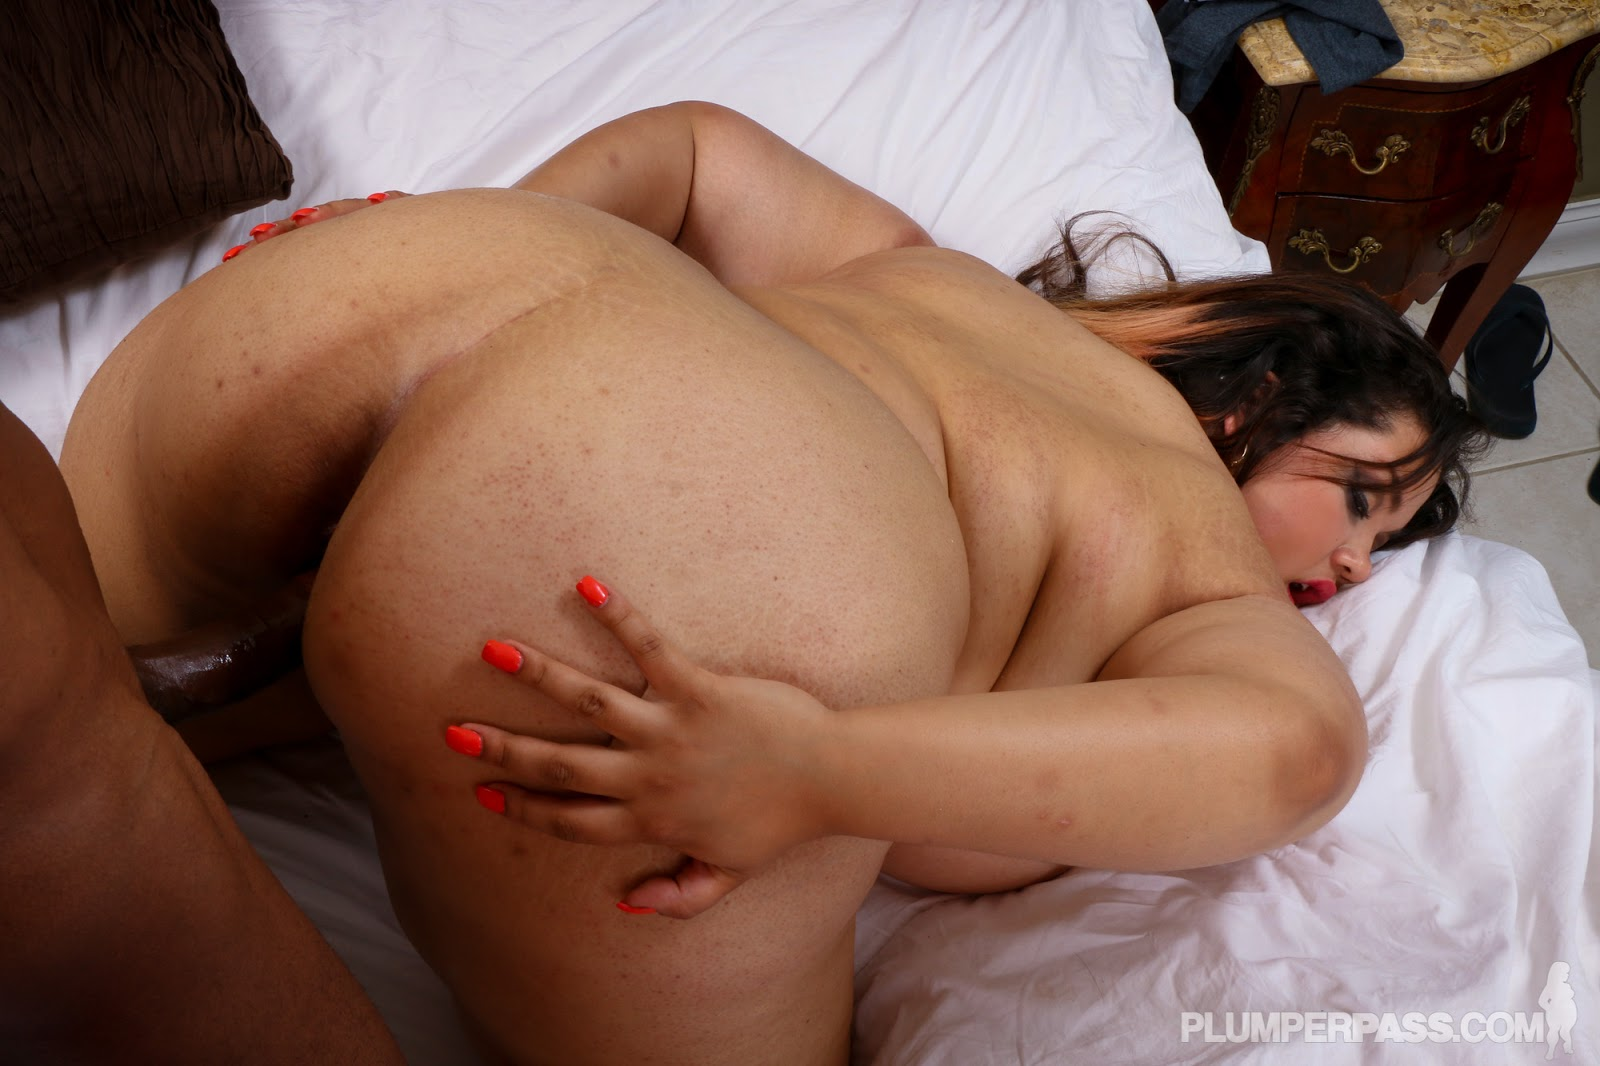 Bbw chevy cobain is oiled massaged and fucked - 2 1